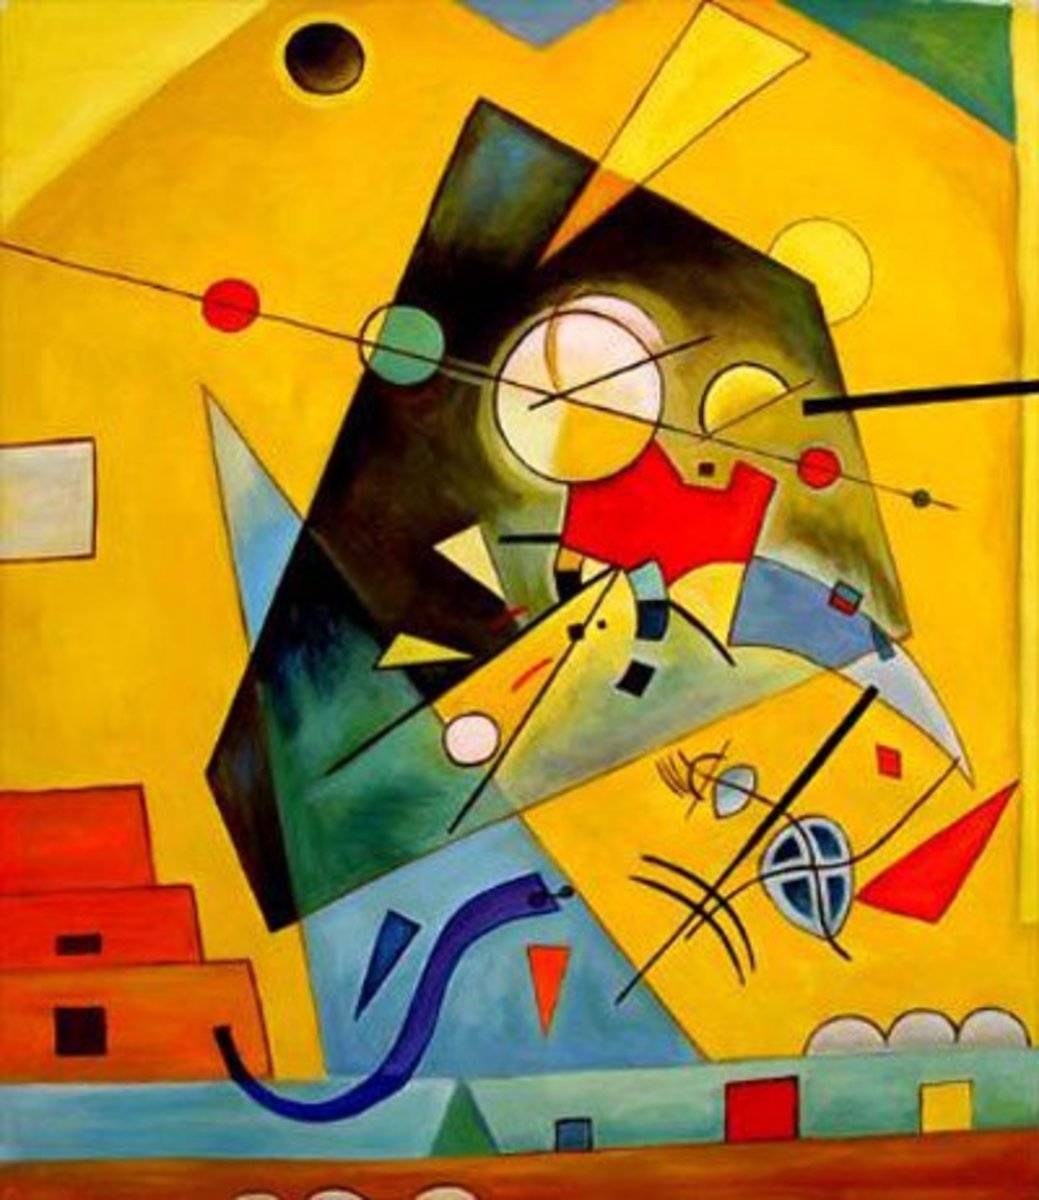 A Kandinsky painting much like the one in the film.